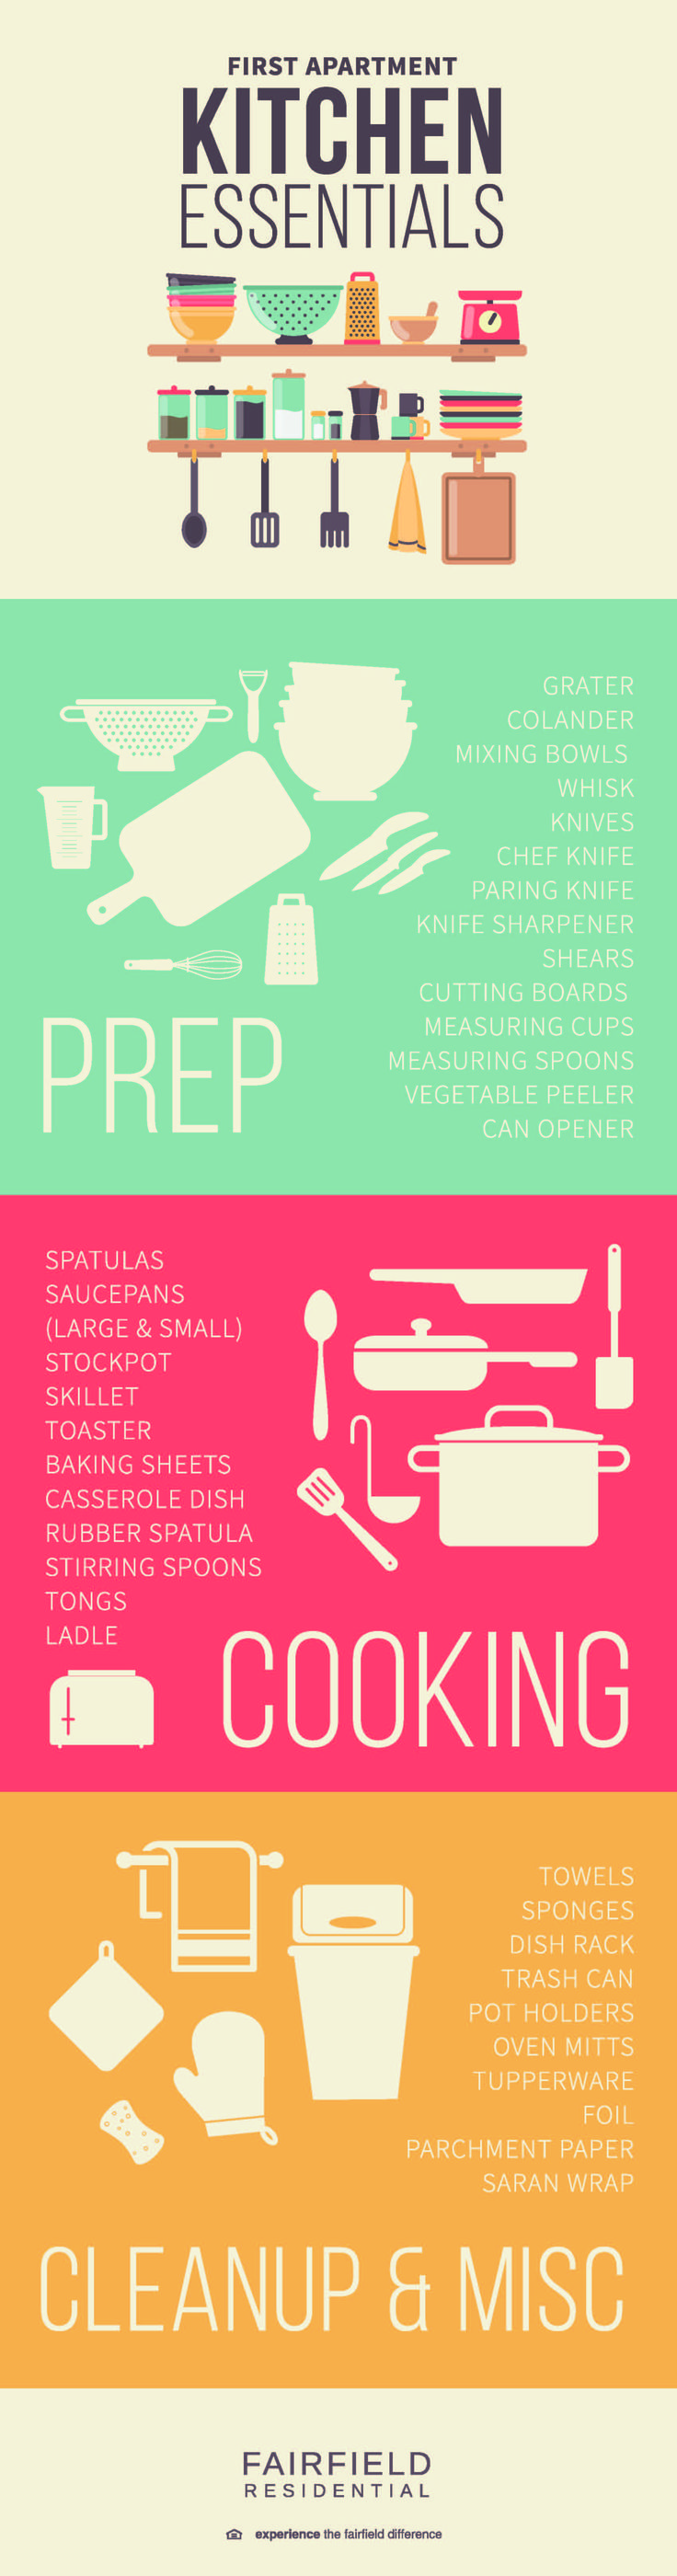 Get your first apartment equipt with the basic kitchen essentials! #kitchen…                                                                                                                                                                                 More